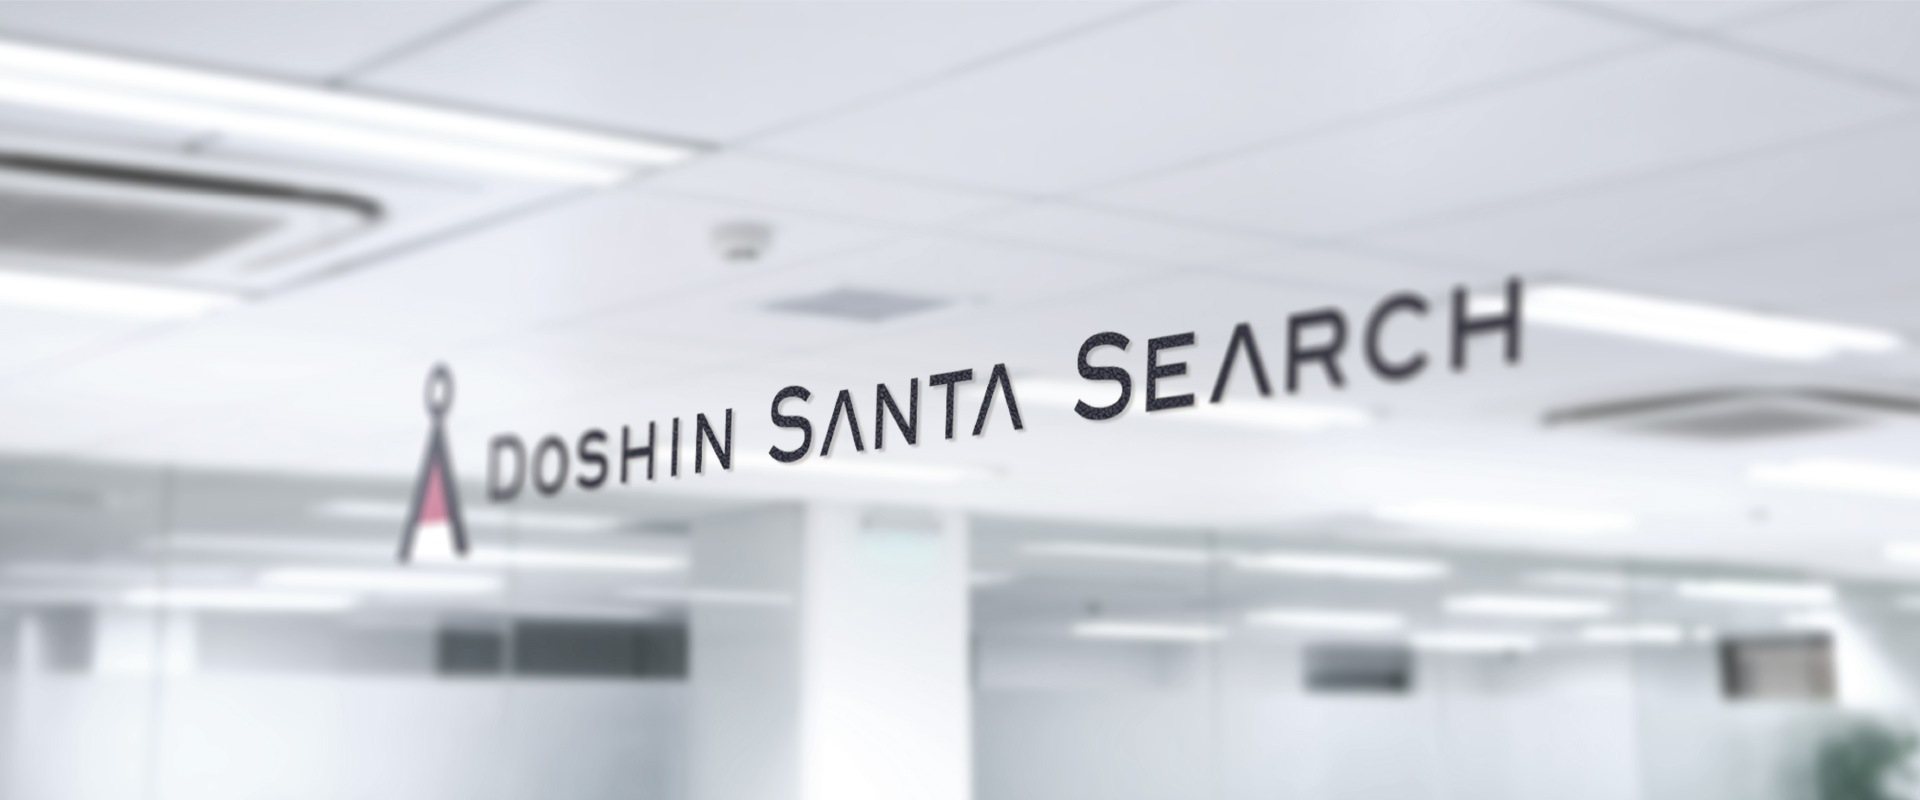 DOSHIN SANTA SEARCH